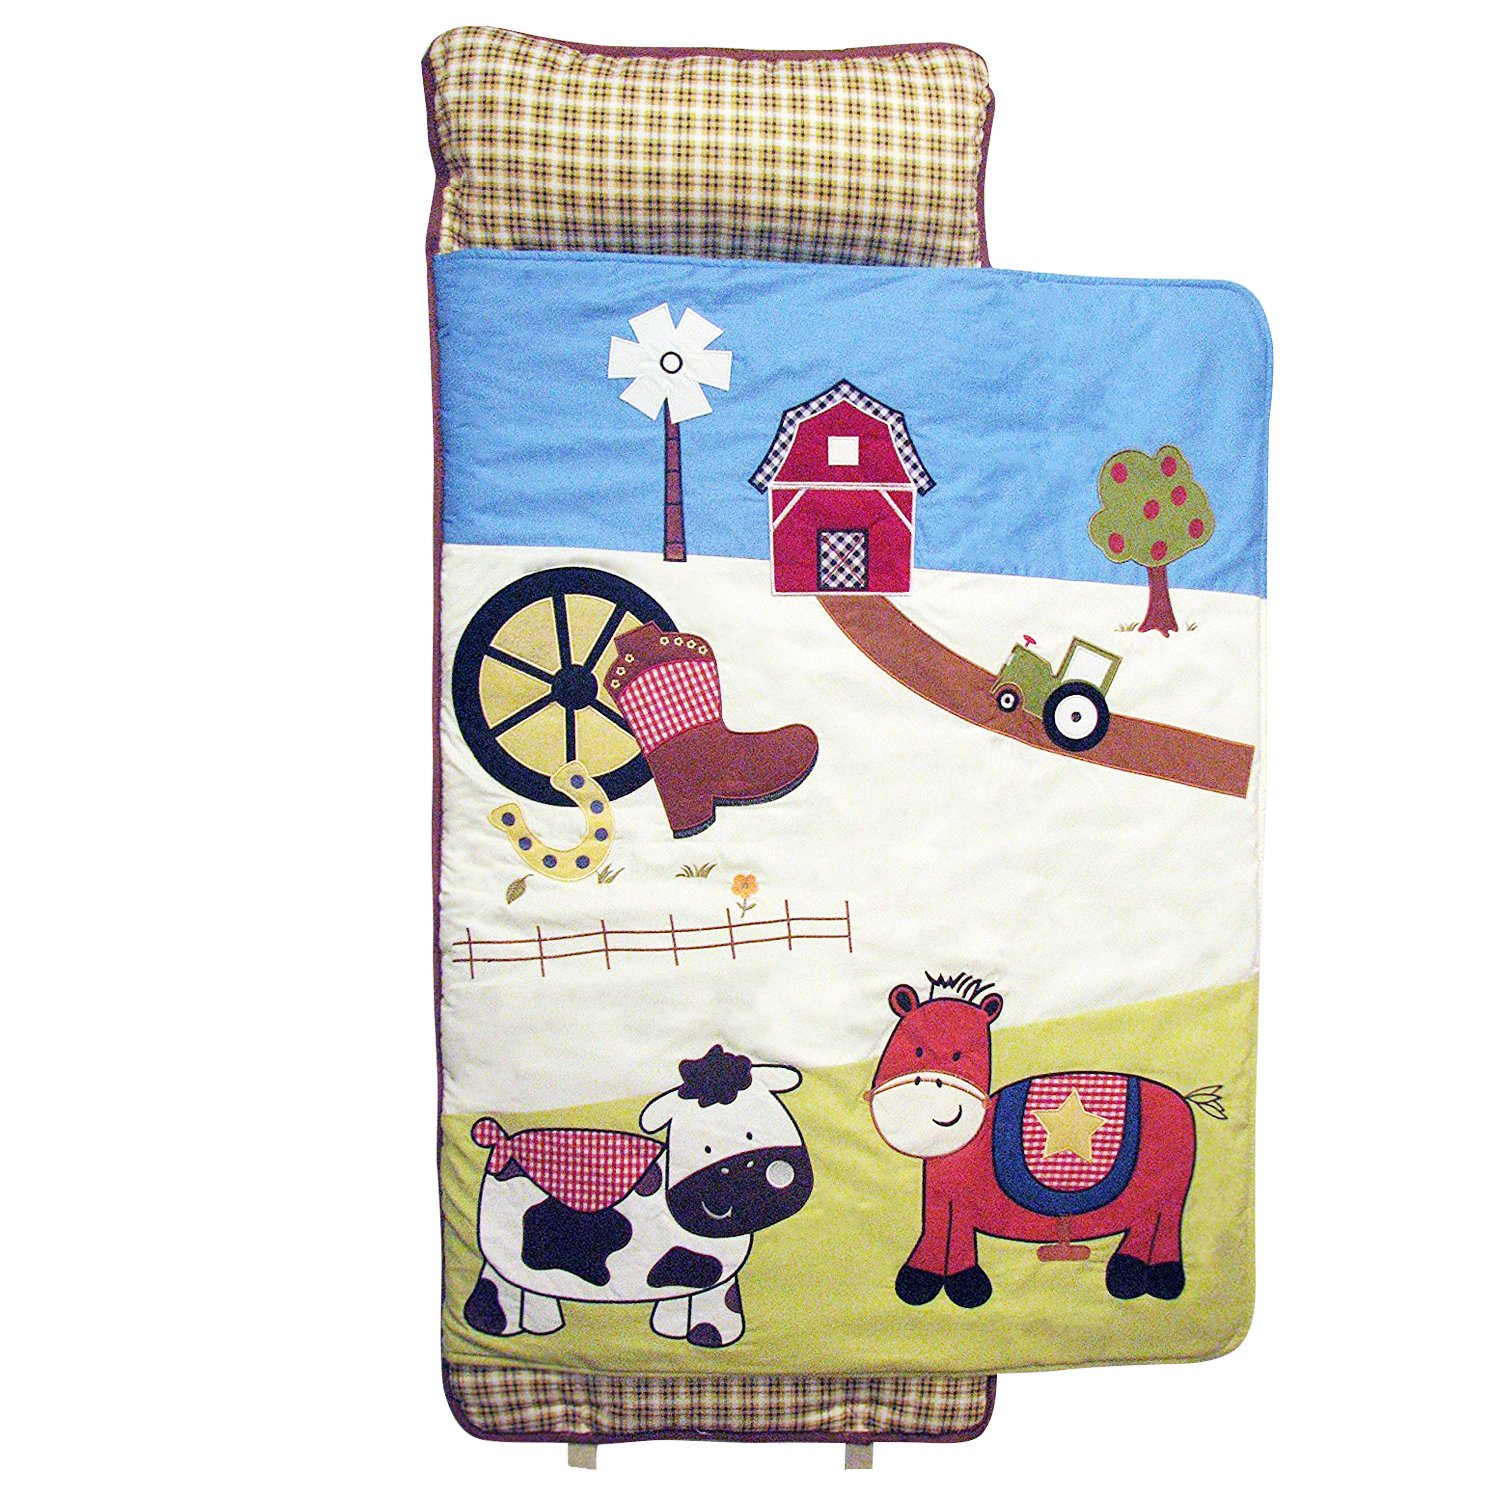 SoHo Nap Mat , Farmland Ranch (All Hand Embroidery) by Ellie and Luke (Image #1)